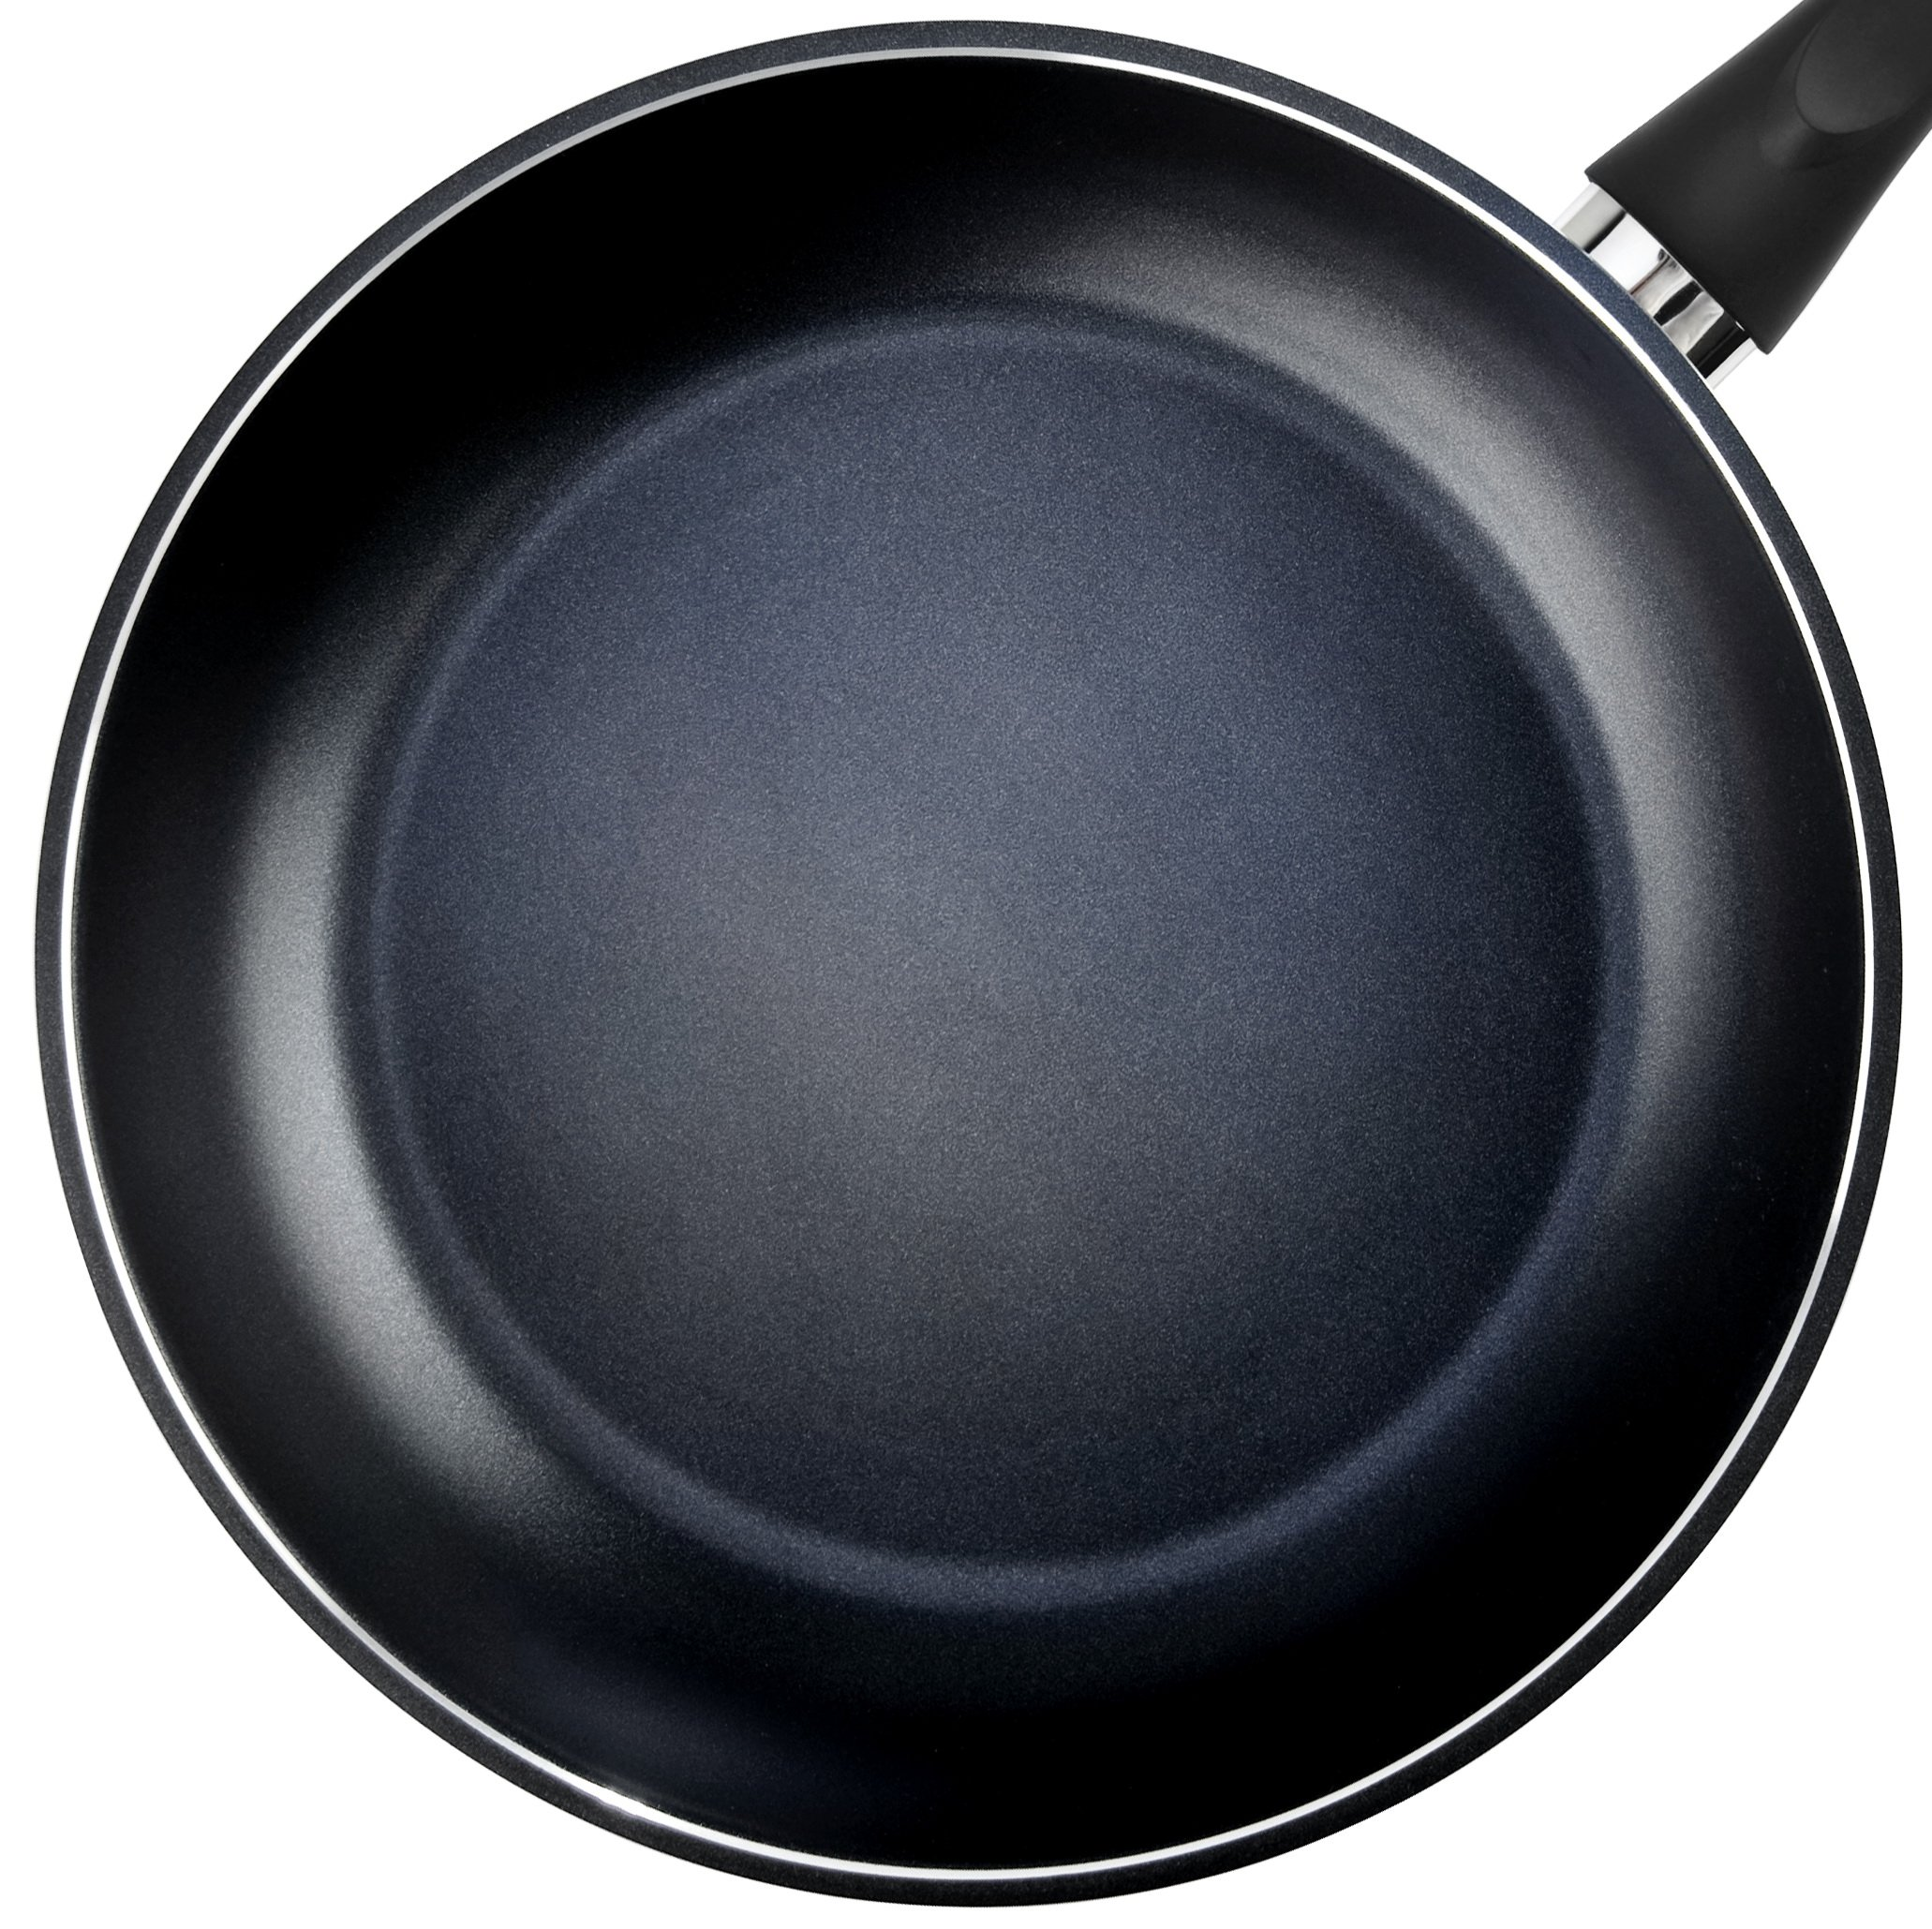 TeChef - Color Pan 12'' Frying Pan, Coated with DuPont Teflon Select - Colour Collection / Non-Stick Coating (PFOA Free) / (Pure Black)